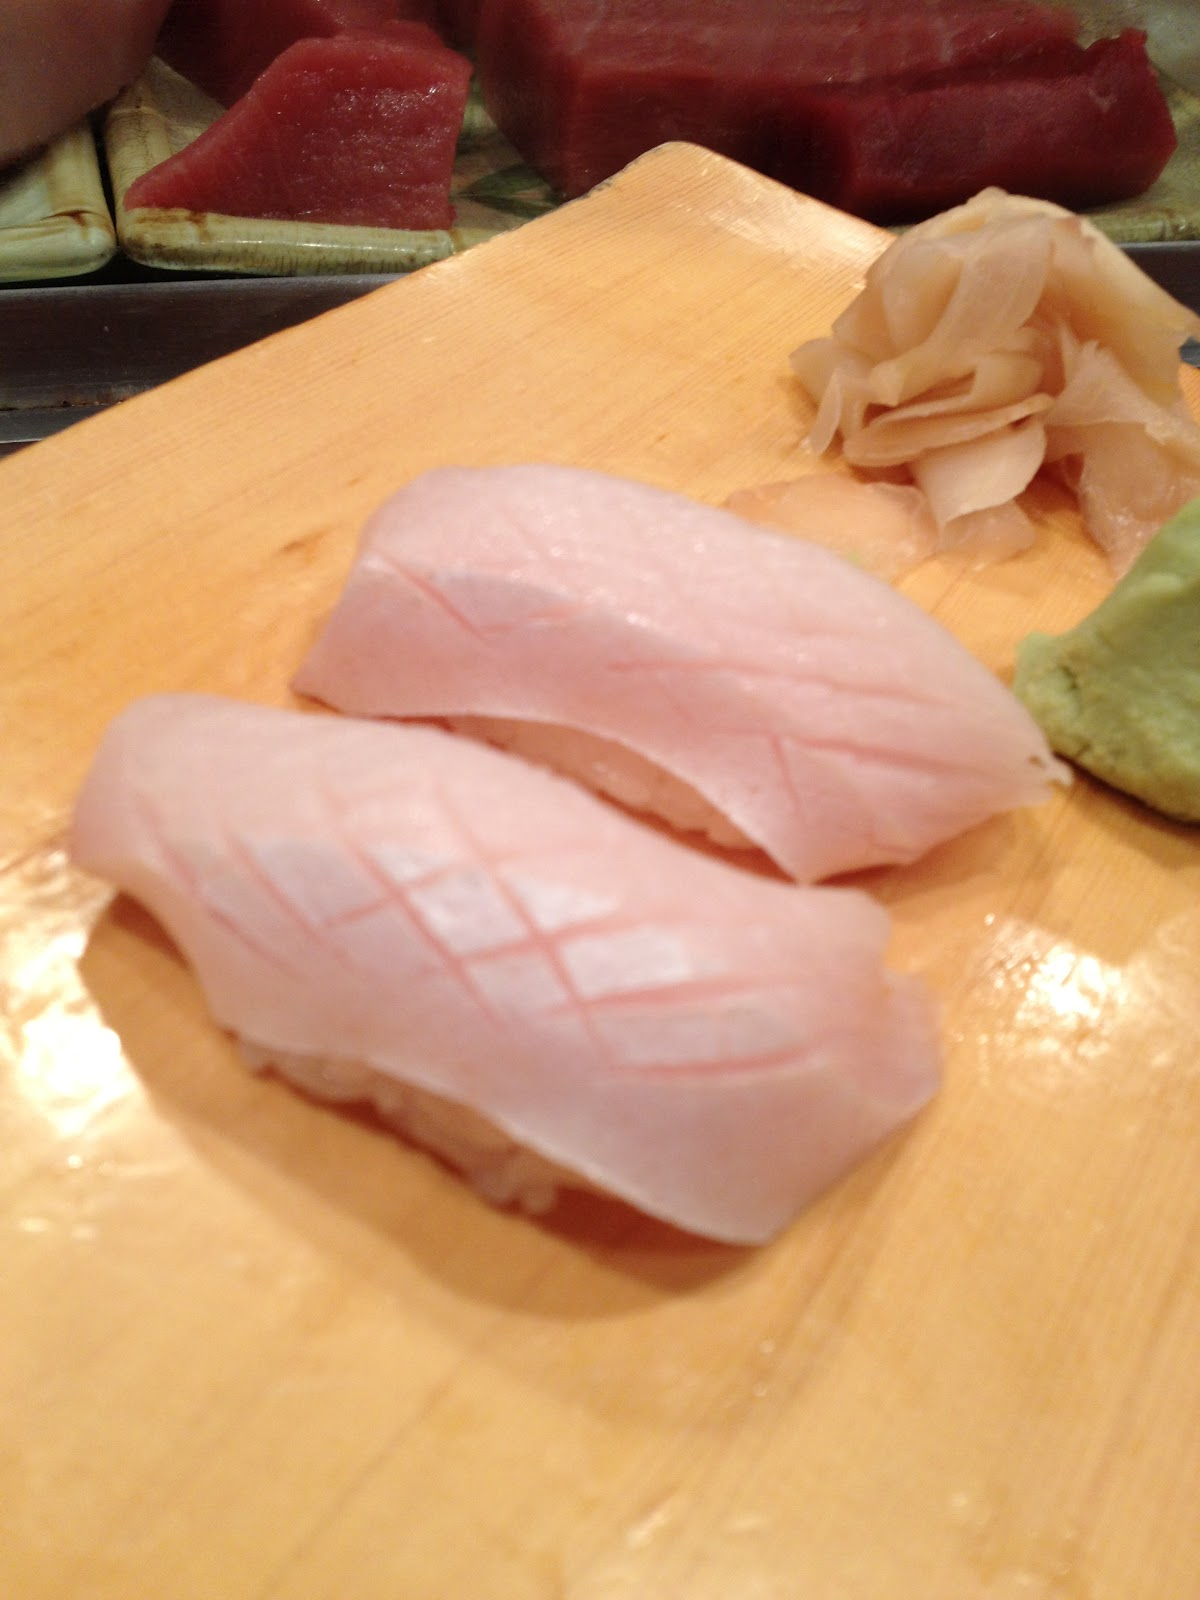 Yellowtail Belly Sushi The gallery for...